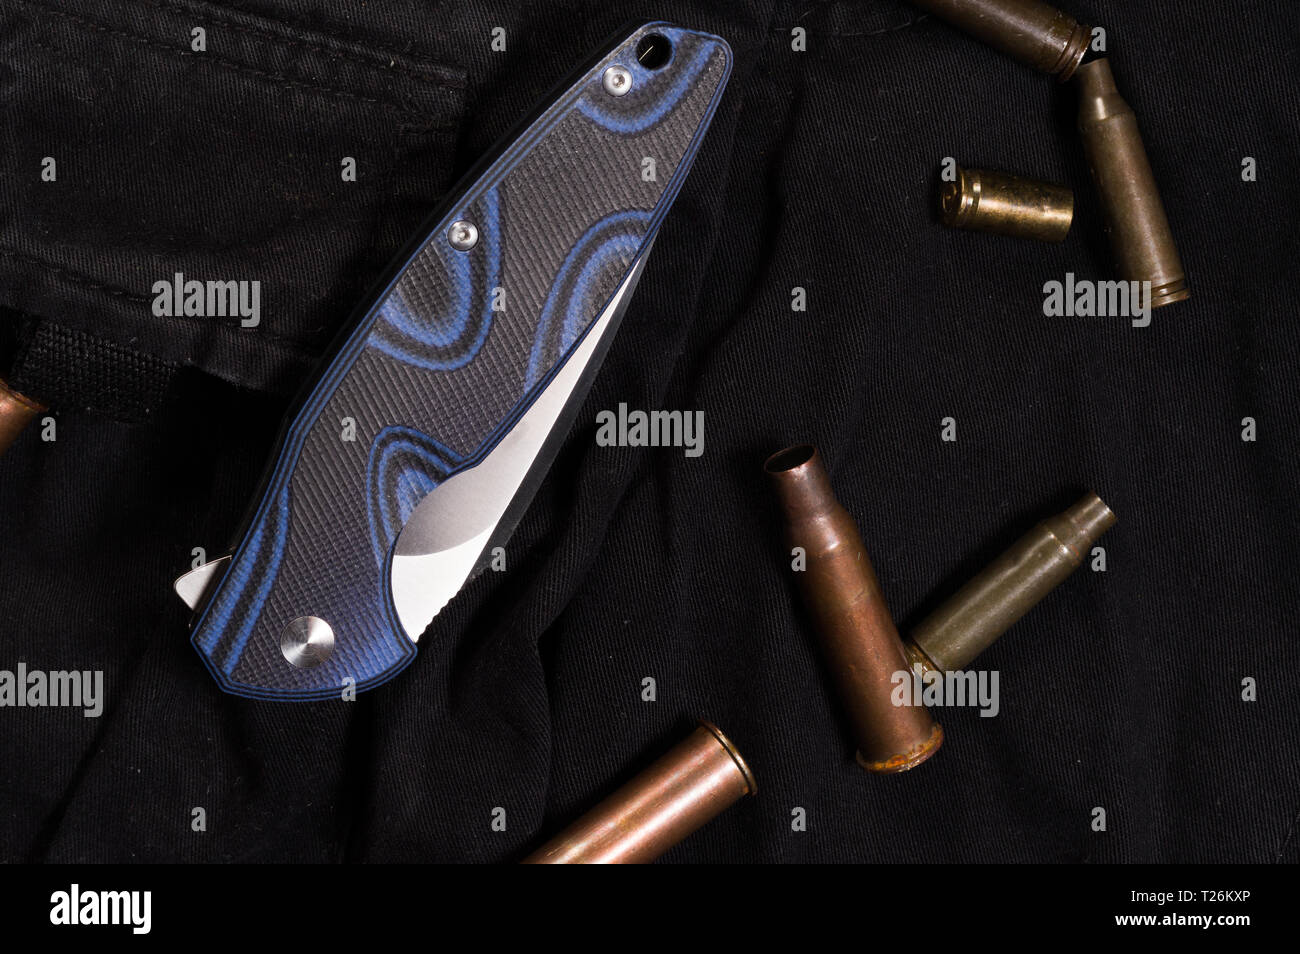 Pocket knife in the folded state. The handle of the knife on the clothes. Top. - Stock Image